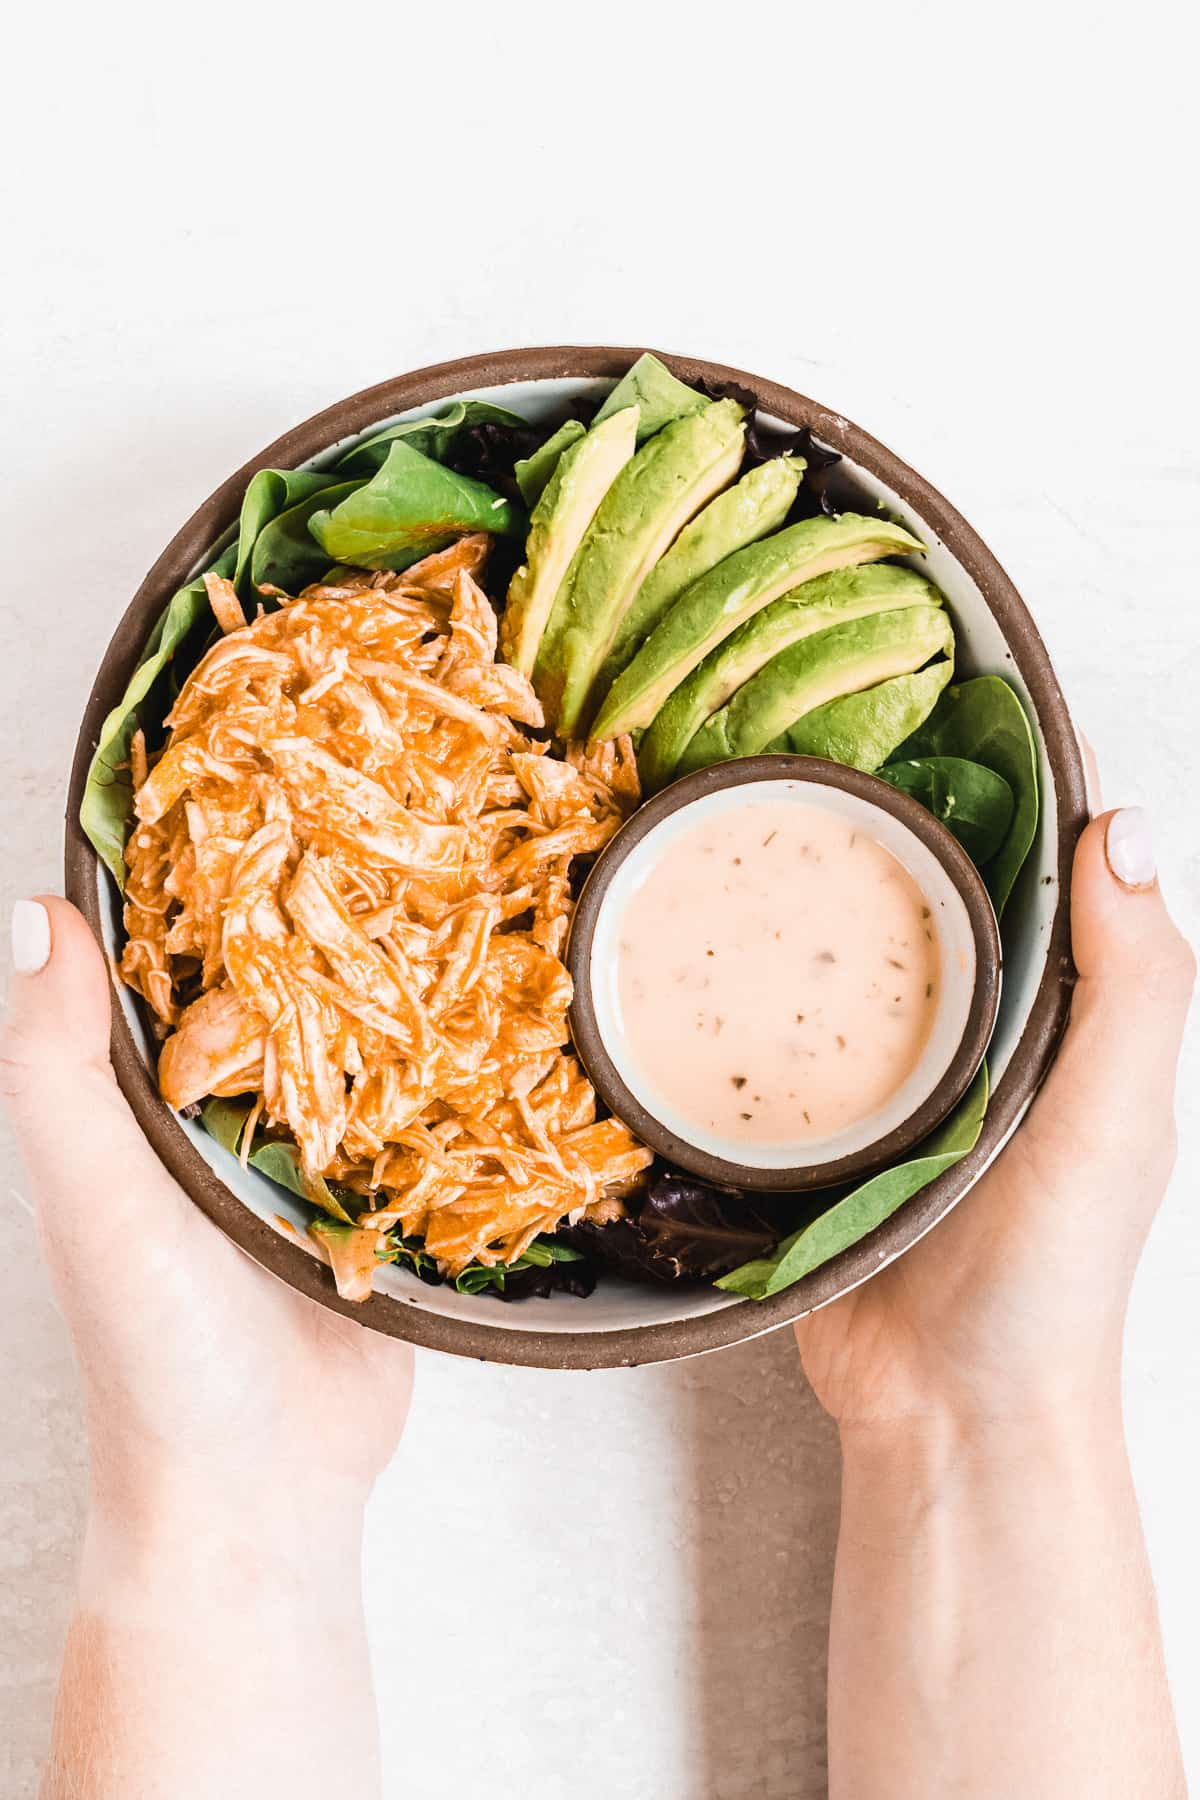 Hands holding bowl full of buffalo chicken, avocado slices, and dressing.